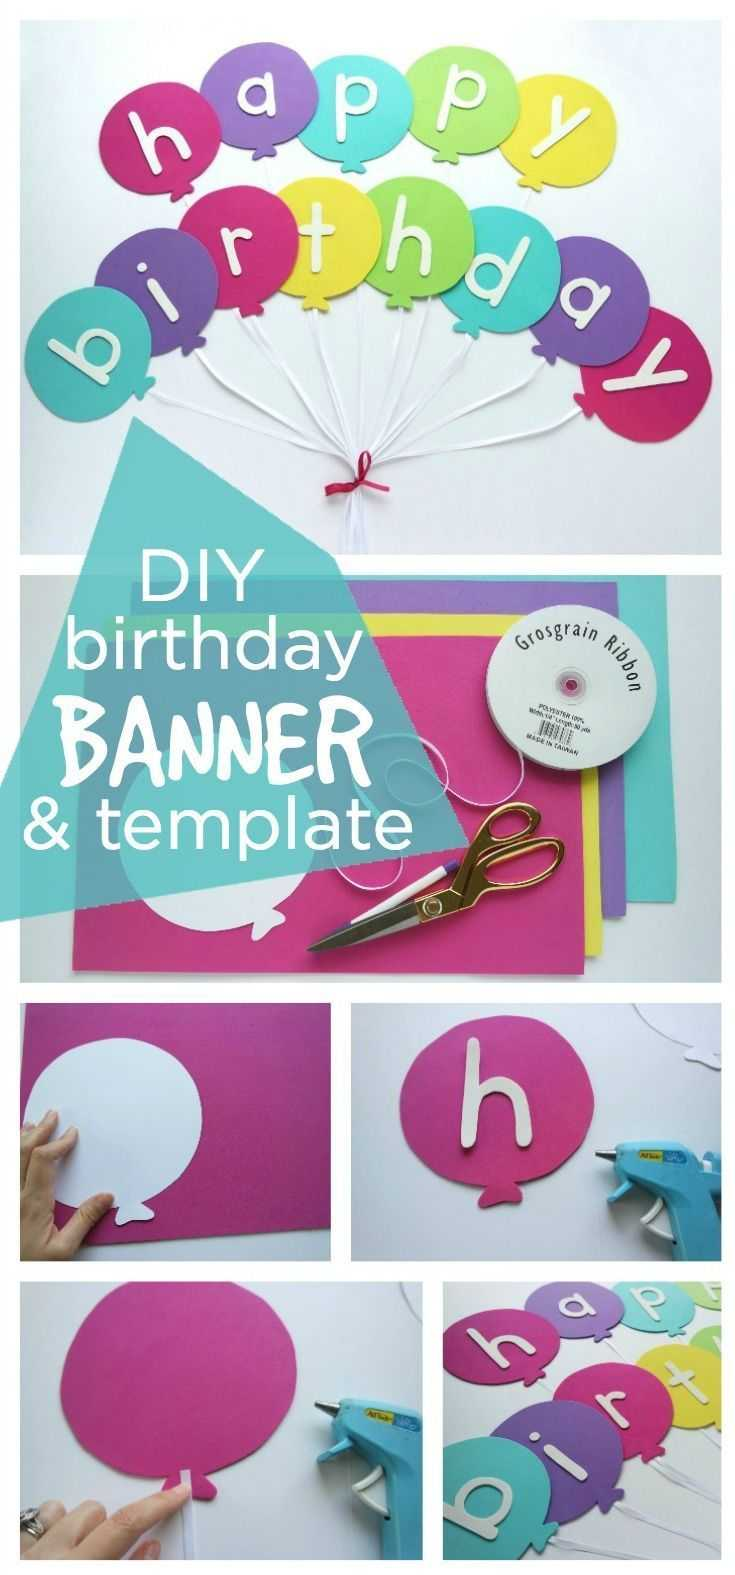 Happy Birthday Banner Diy Template | Diy Party Ideas  Group For Diy Party Banner Template